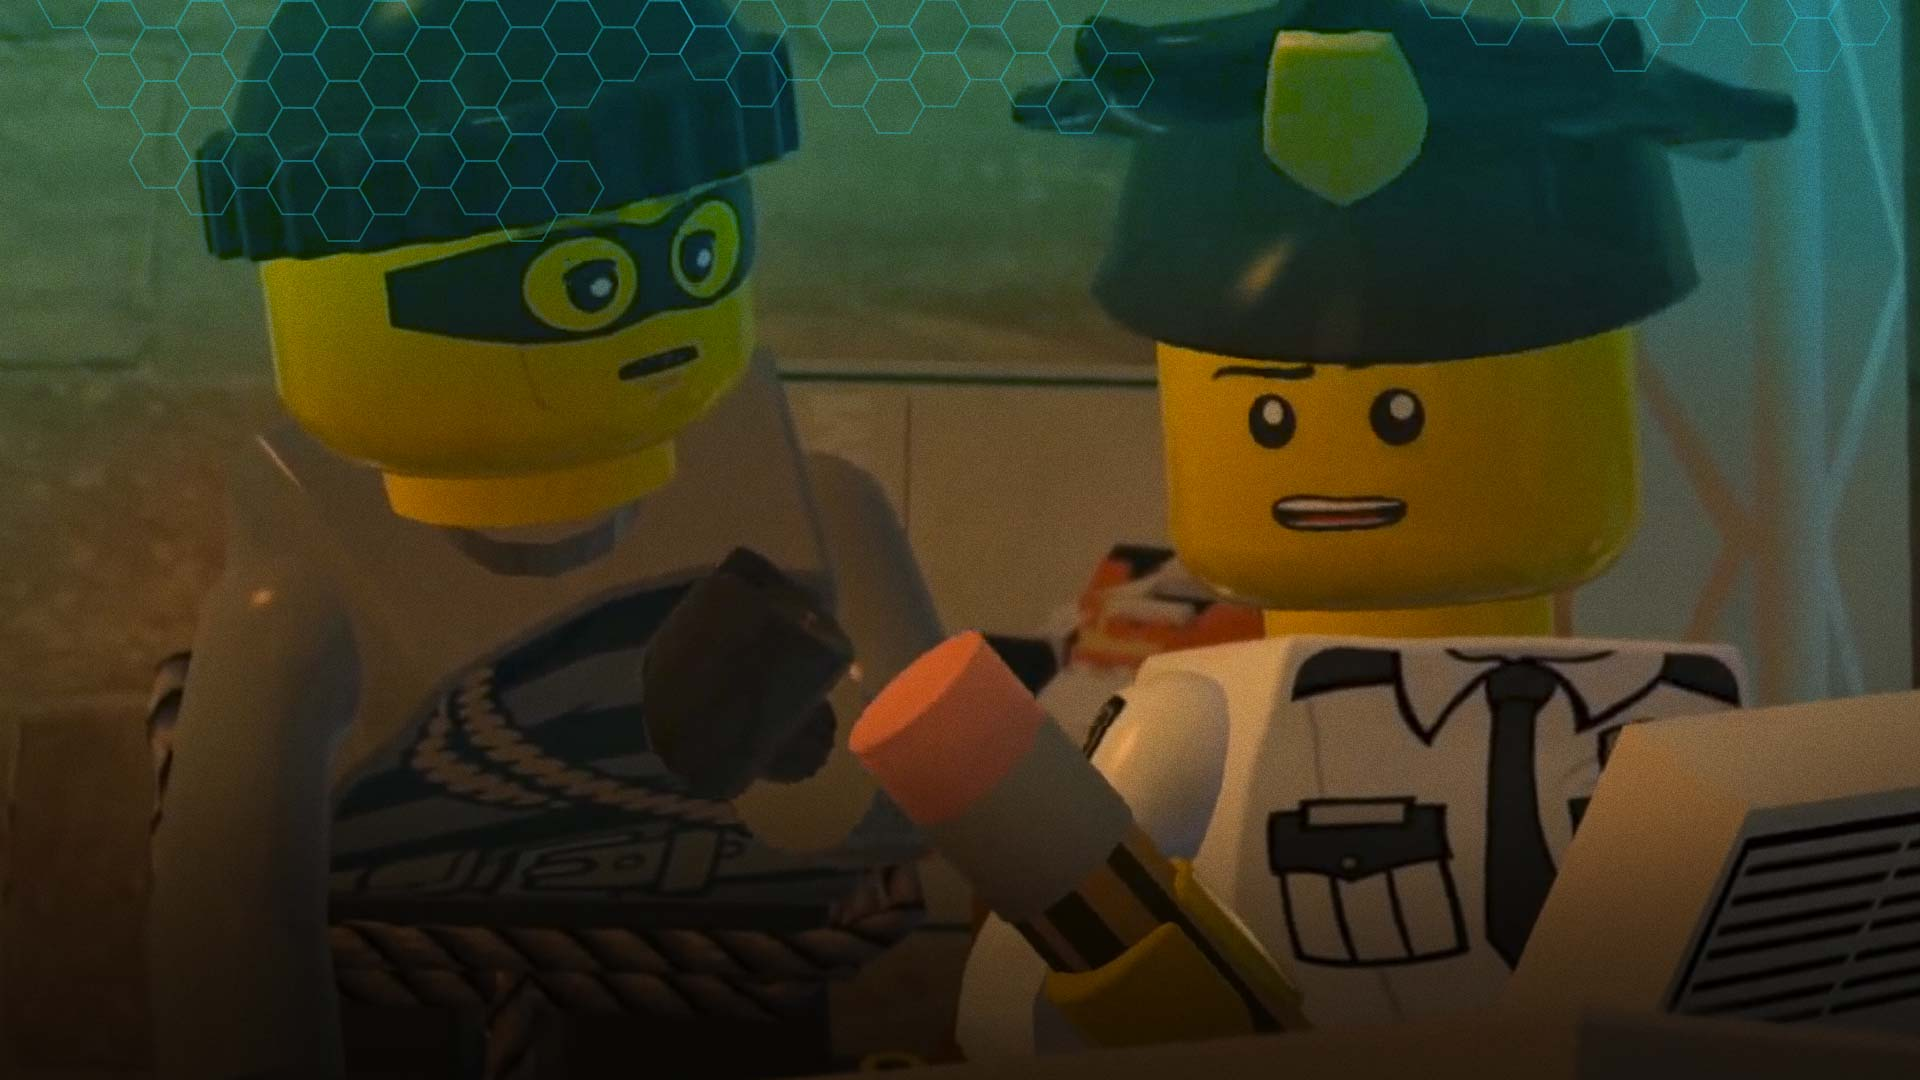 The Top Five Best Lego Games